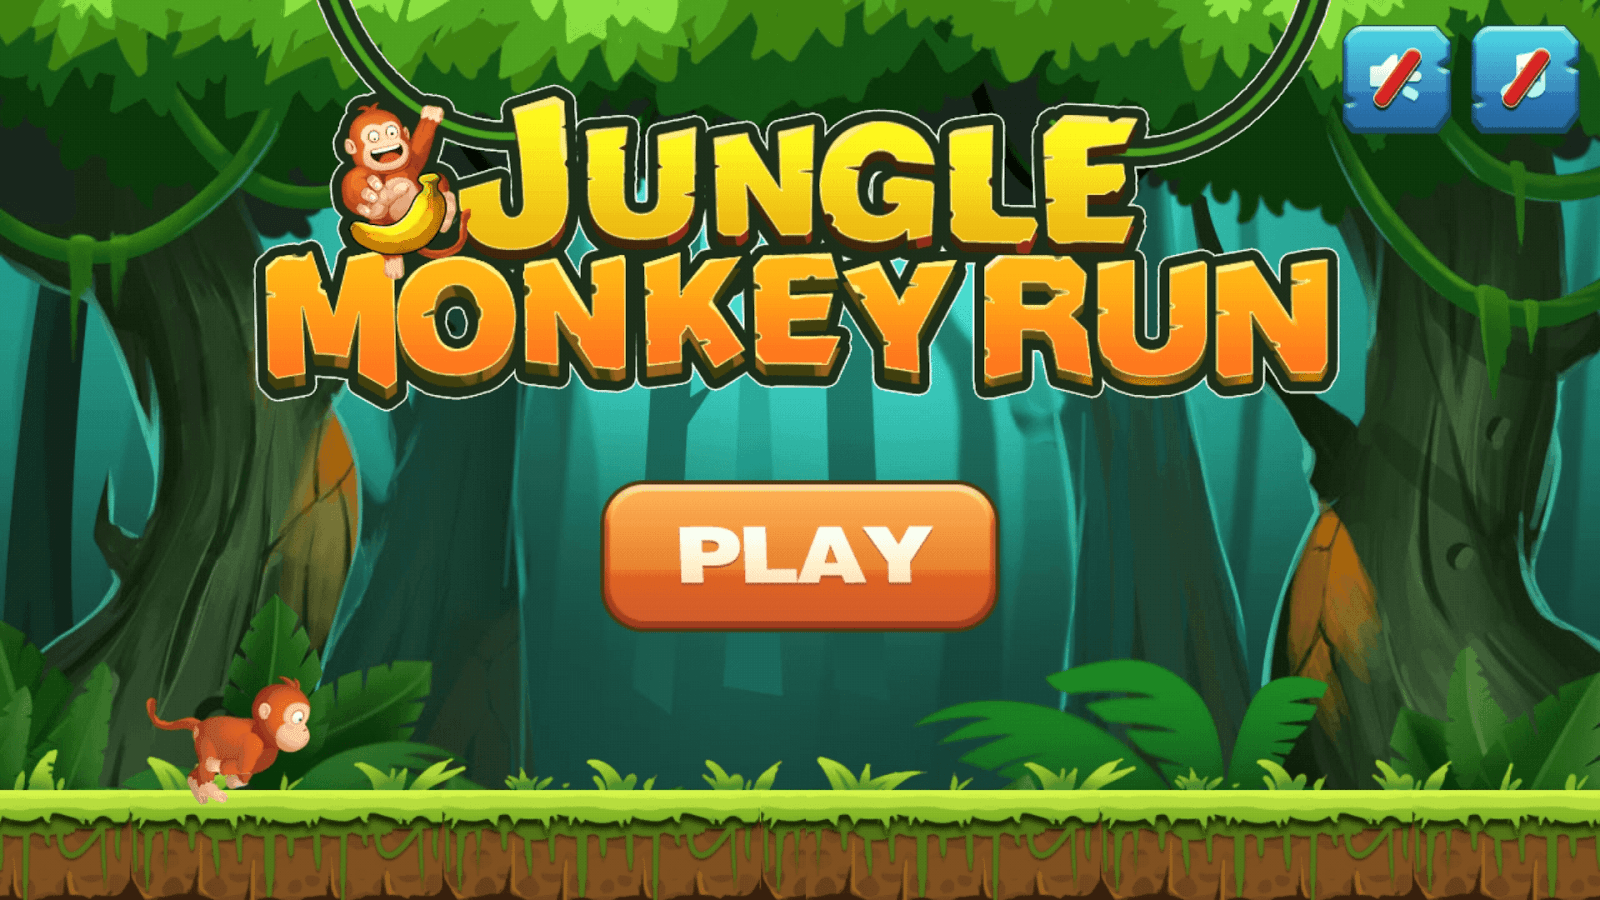 Jungle Monkey Run Android Apps On Google Play